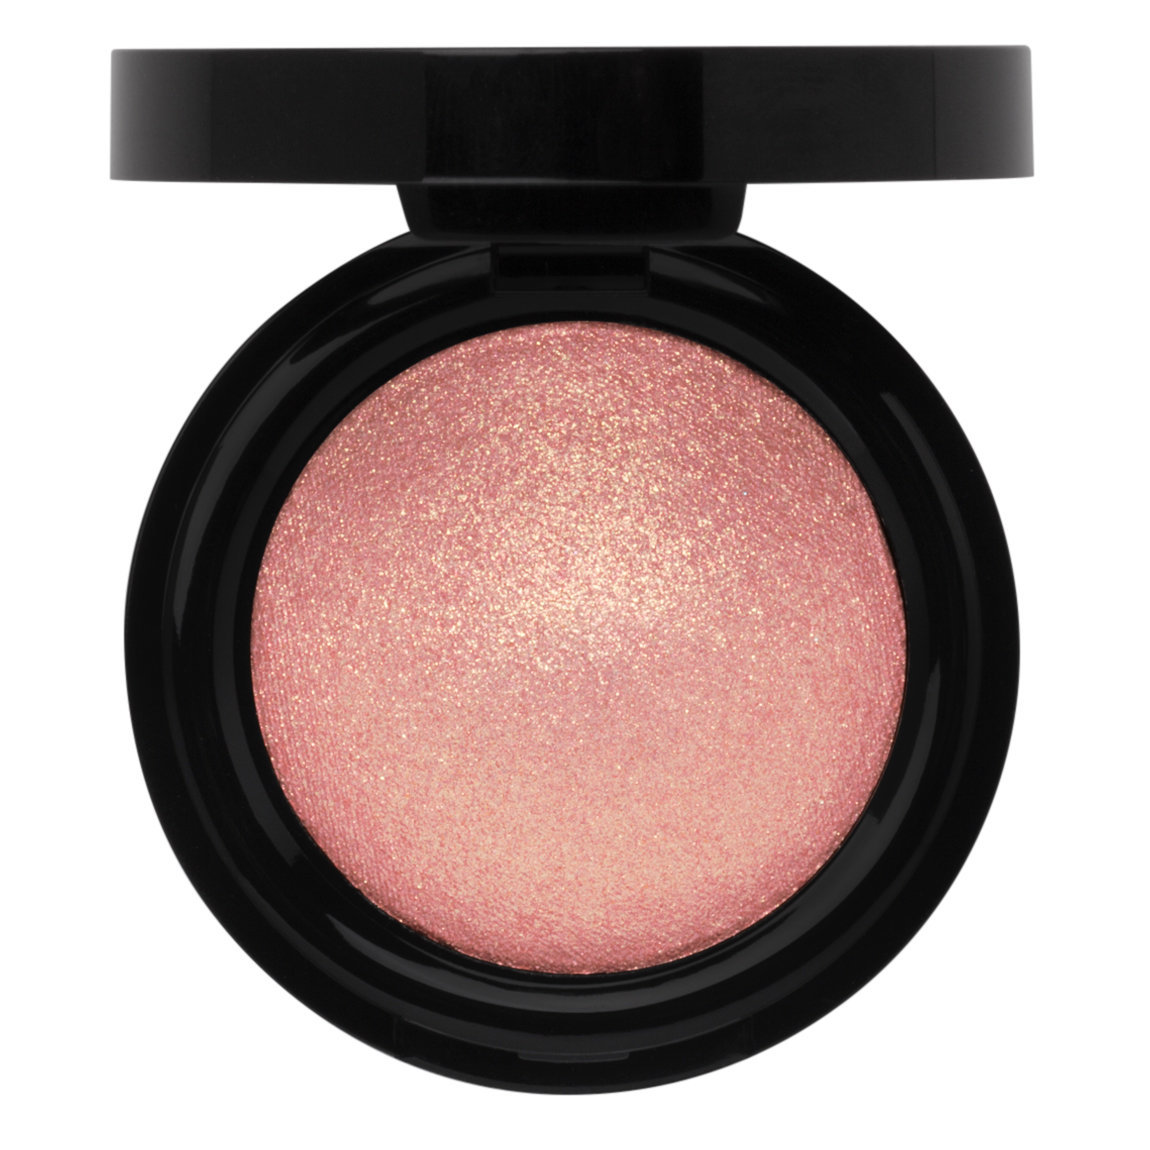 Inglot Cosmetics Intense Sparkler Face Eyes Body Highlighter 12 product smear.